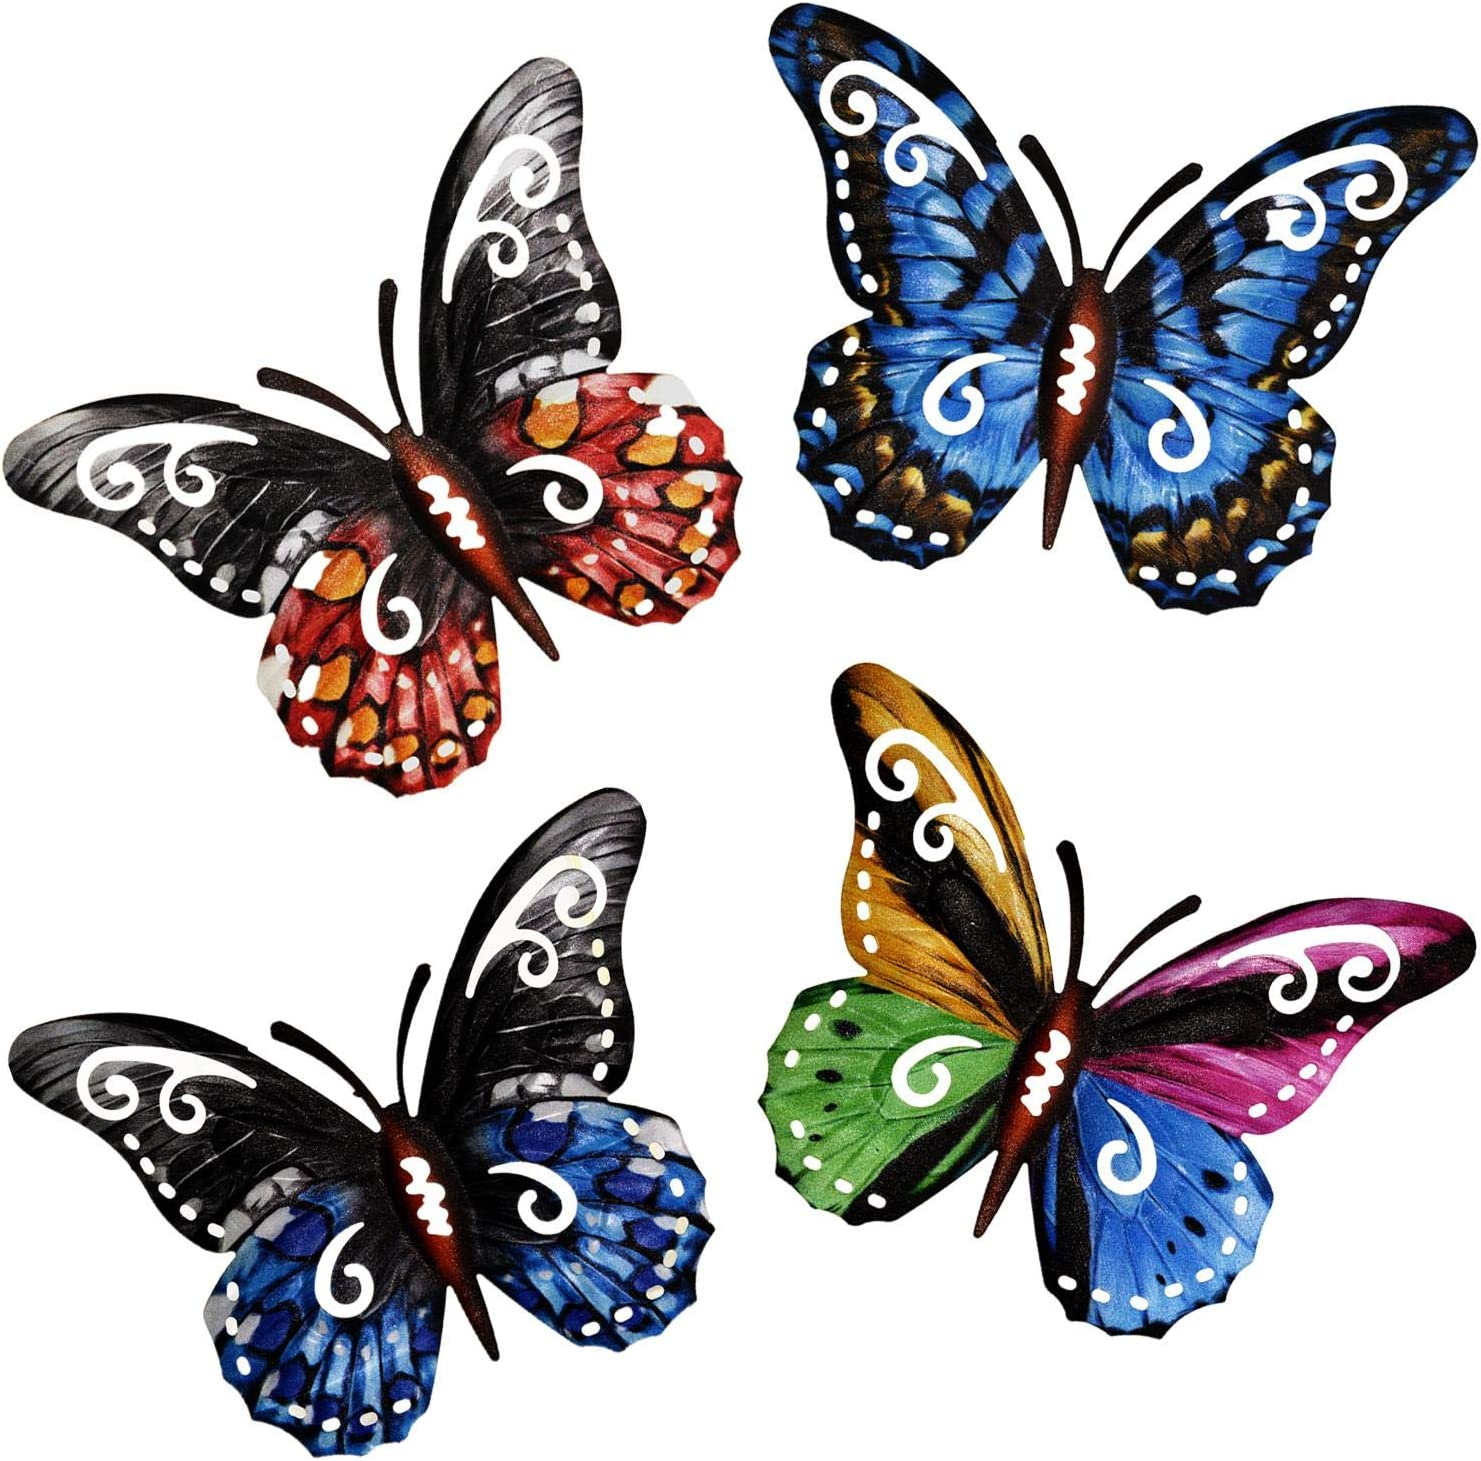 MIXUN Metal Butterfly Wall Art Hanging Decor for Patio Garden Backyard Outdoor